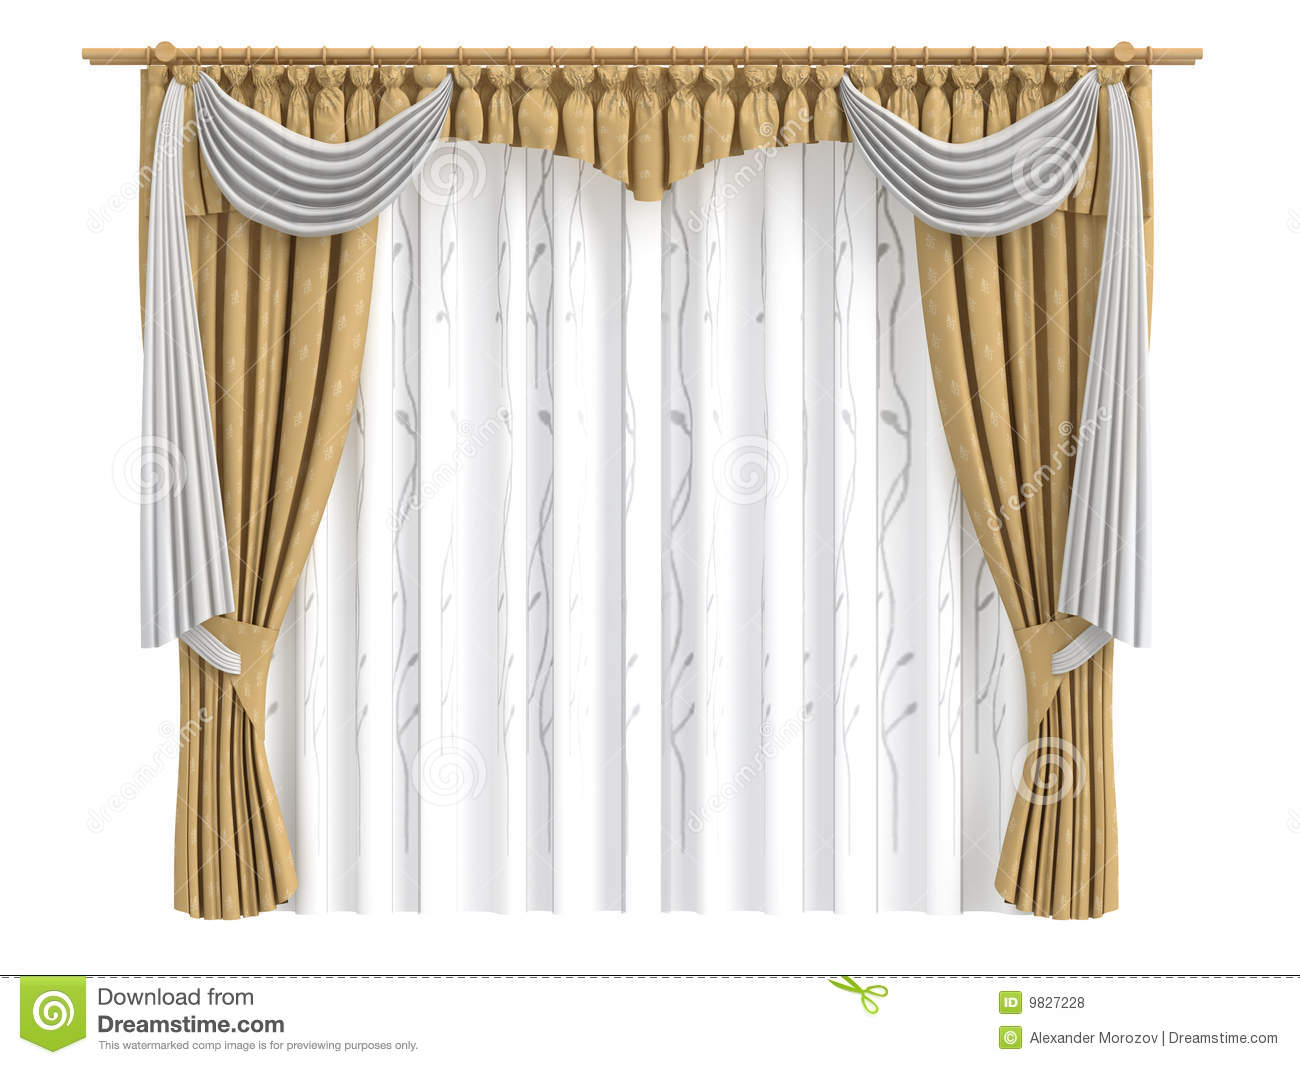 Curtains royalty free stock photos image 9827228 - Pictures of curtains ...